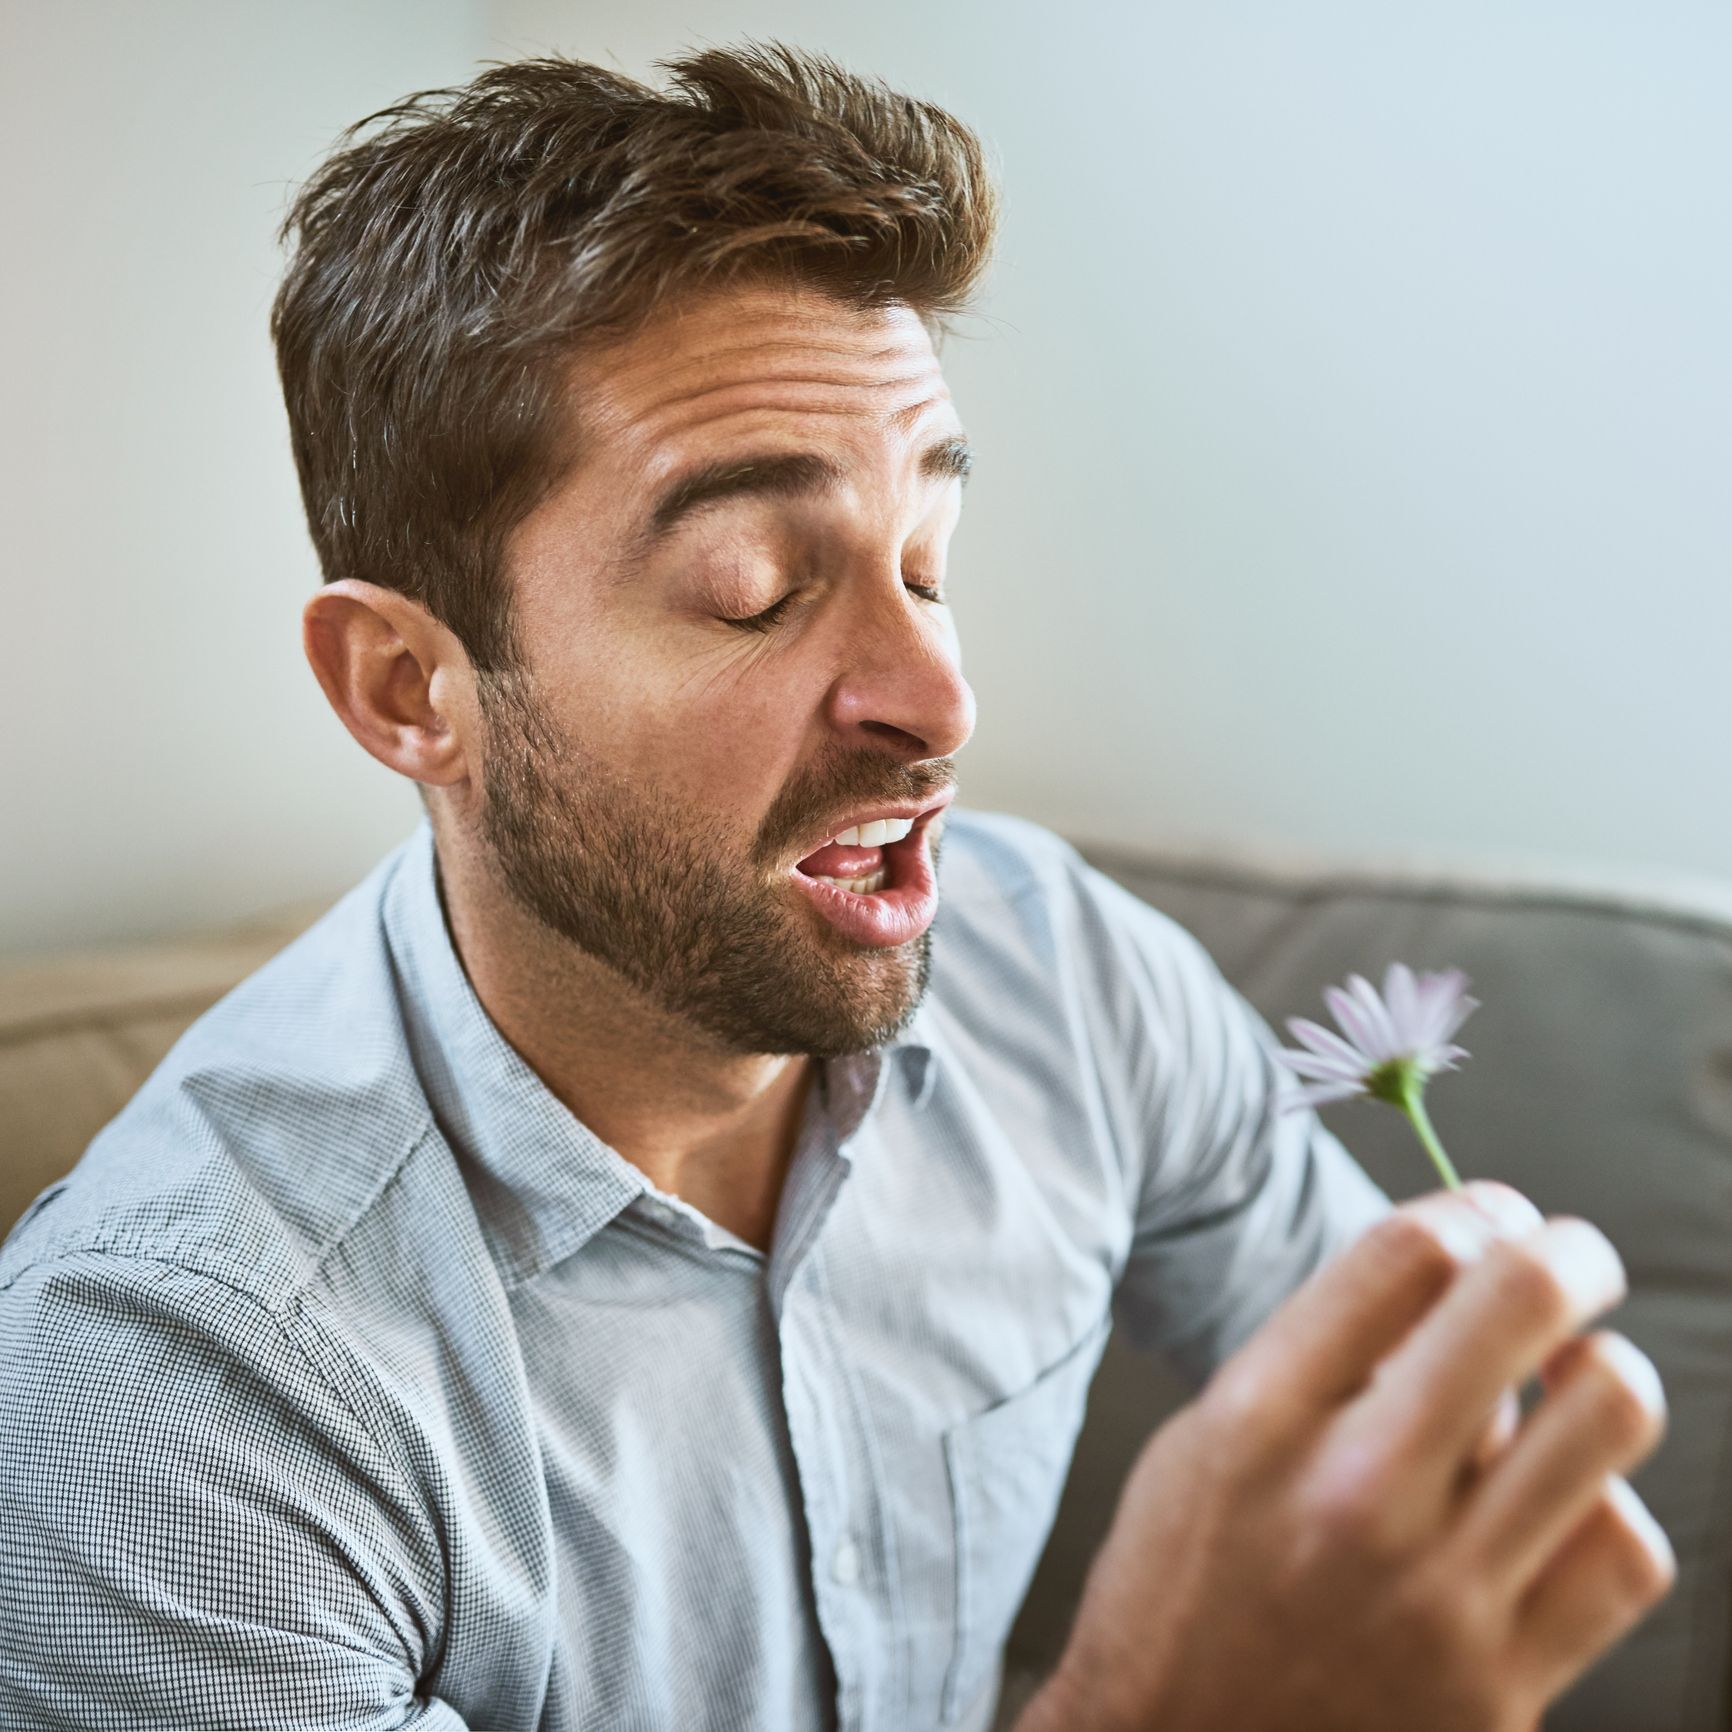 How to stop hay fever in its tracks